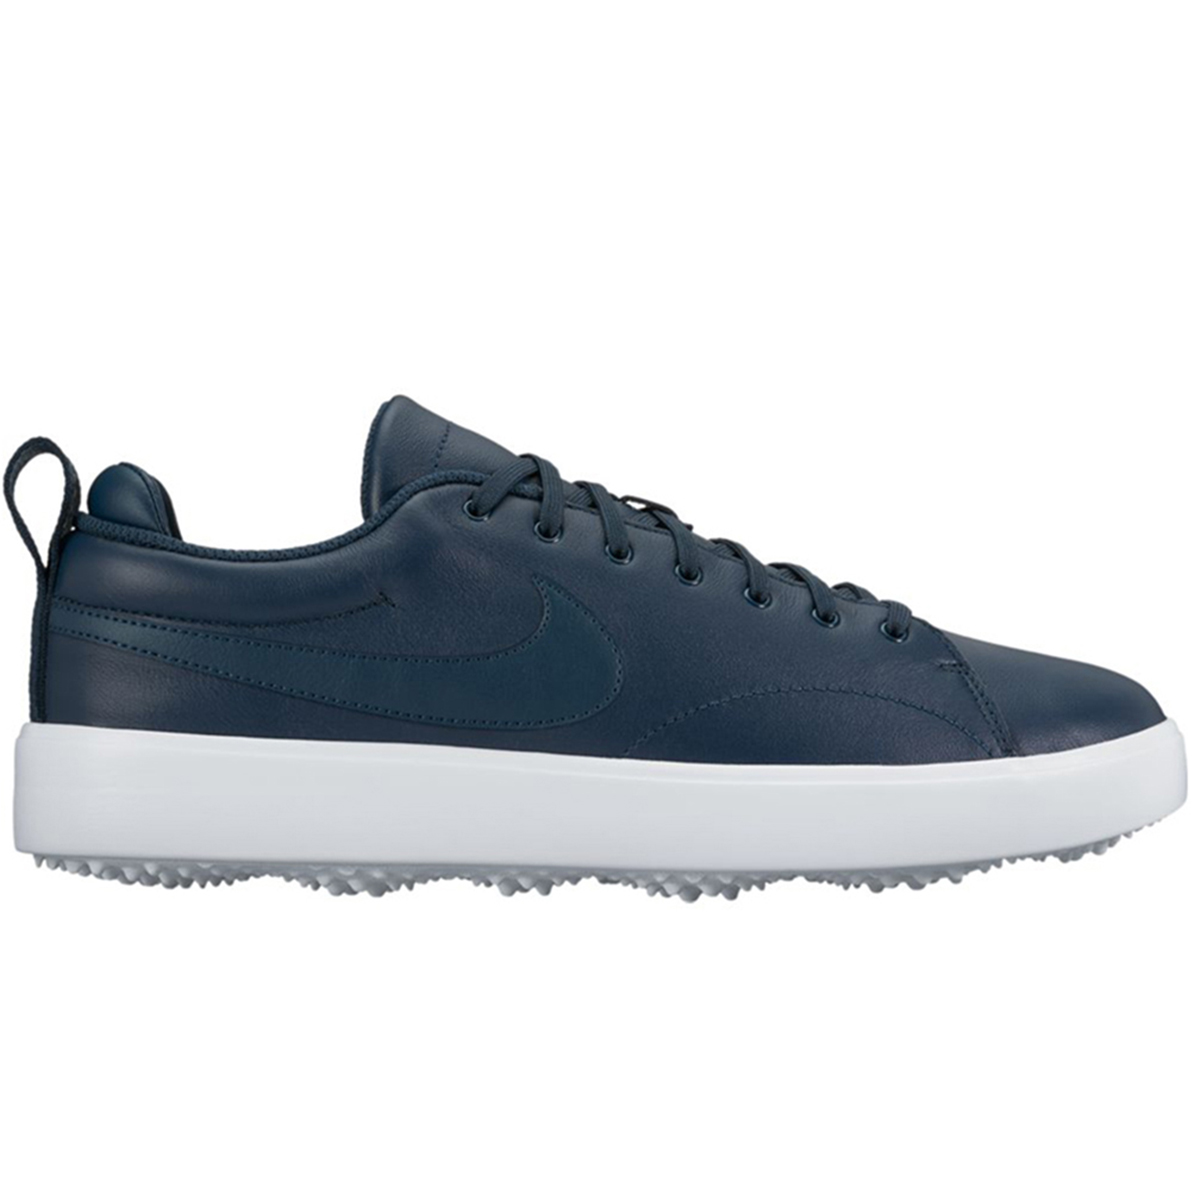 Nike Course Classic Golf Shoes Navy